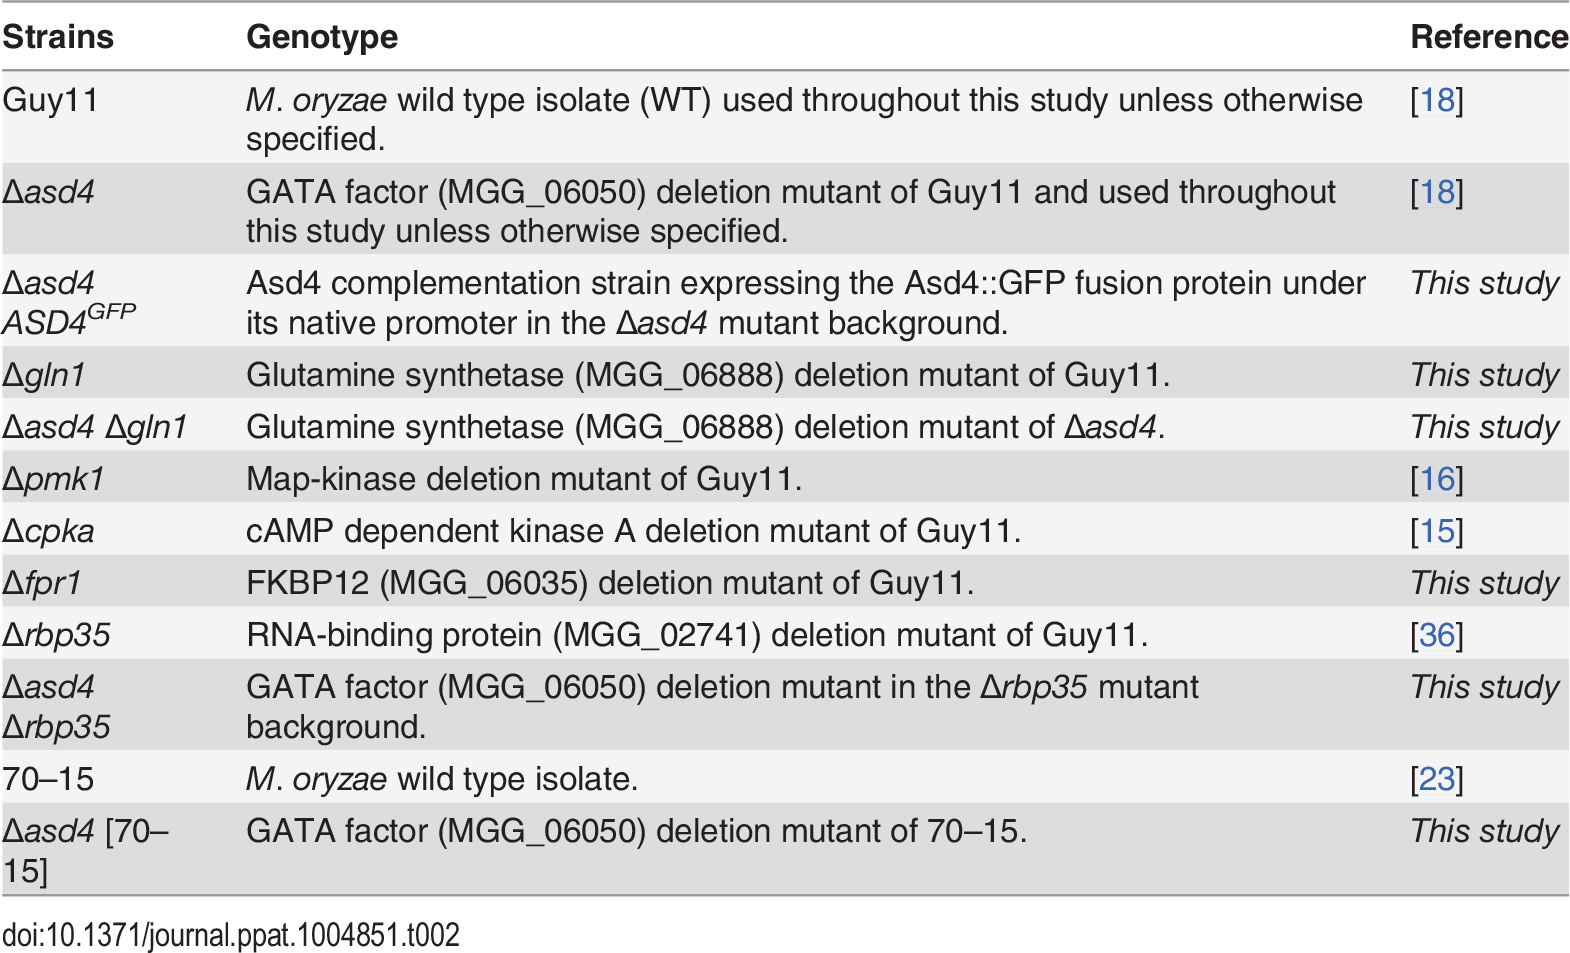 <i>Magnaporthe oryzae</i> strains used in this study.